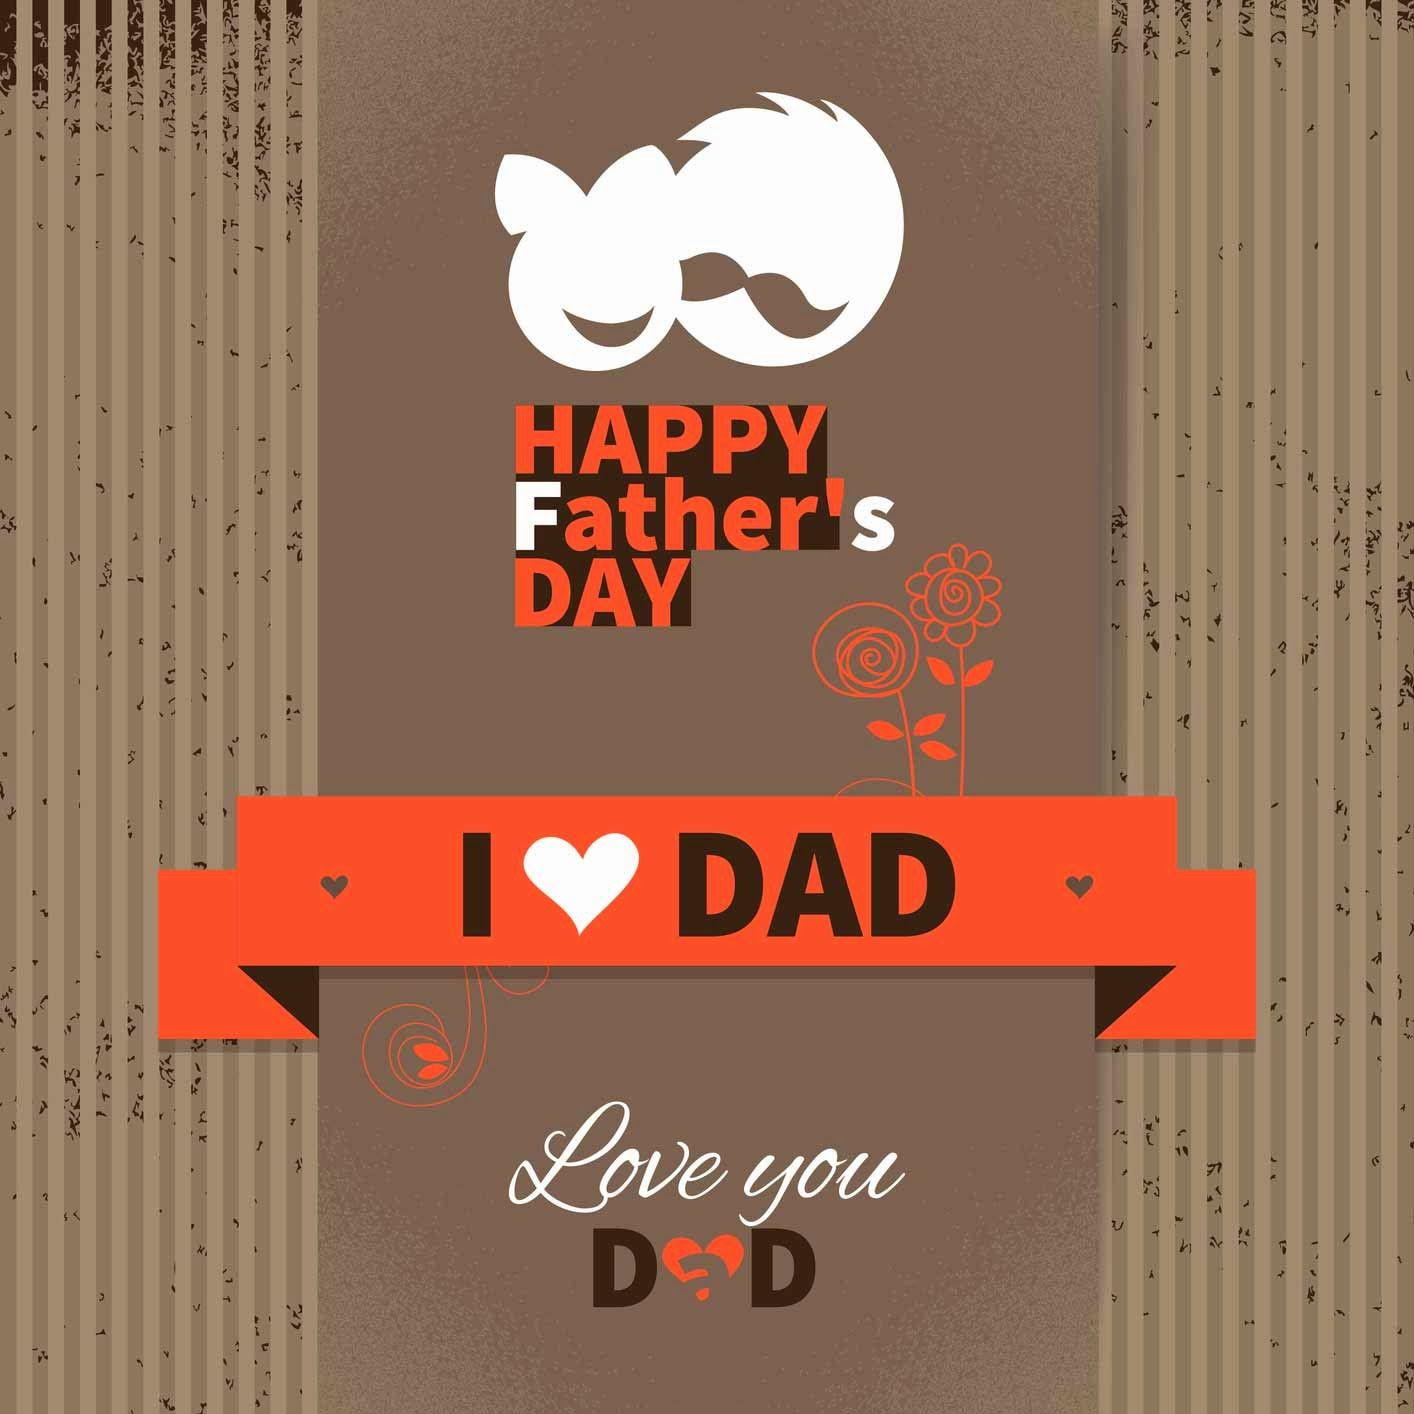 Father Son Quotes Tattoos Pin Fathers Day Quotes Happy: Happy Fathers Day 2015 Wishes, Quotes, Greetings, Dates